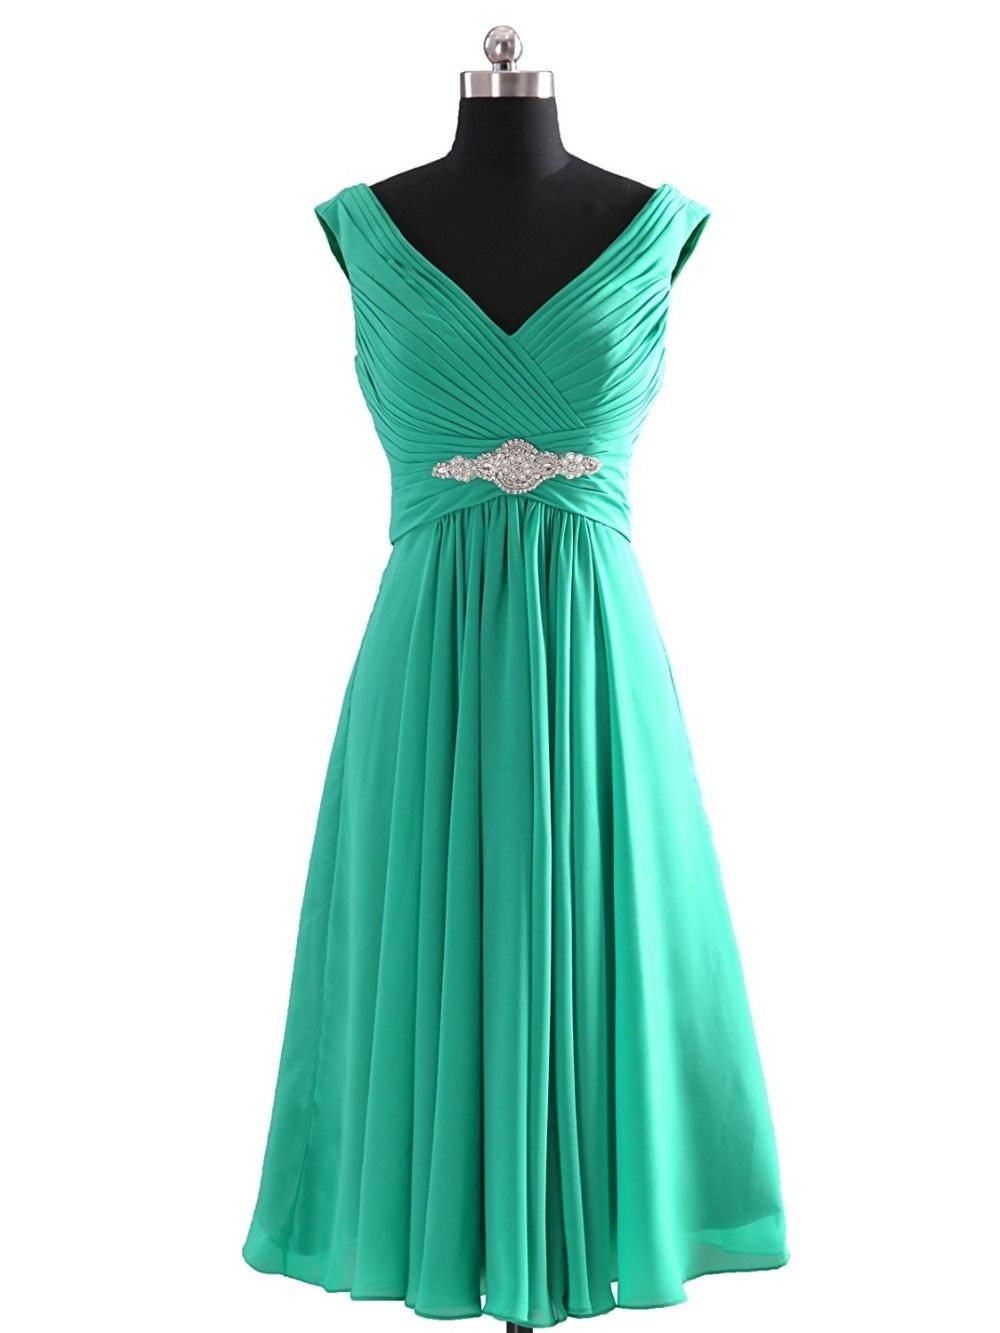 Bridesmaid dresses short double v neck wedding party dresses vestido